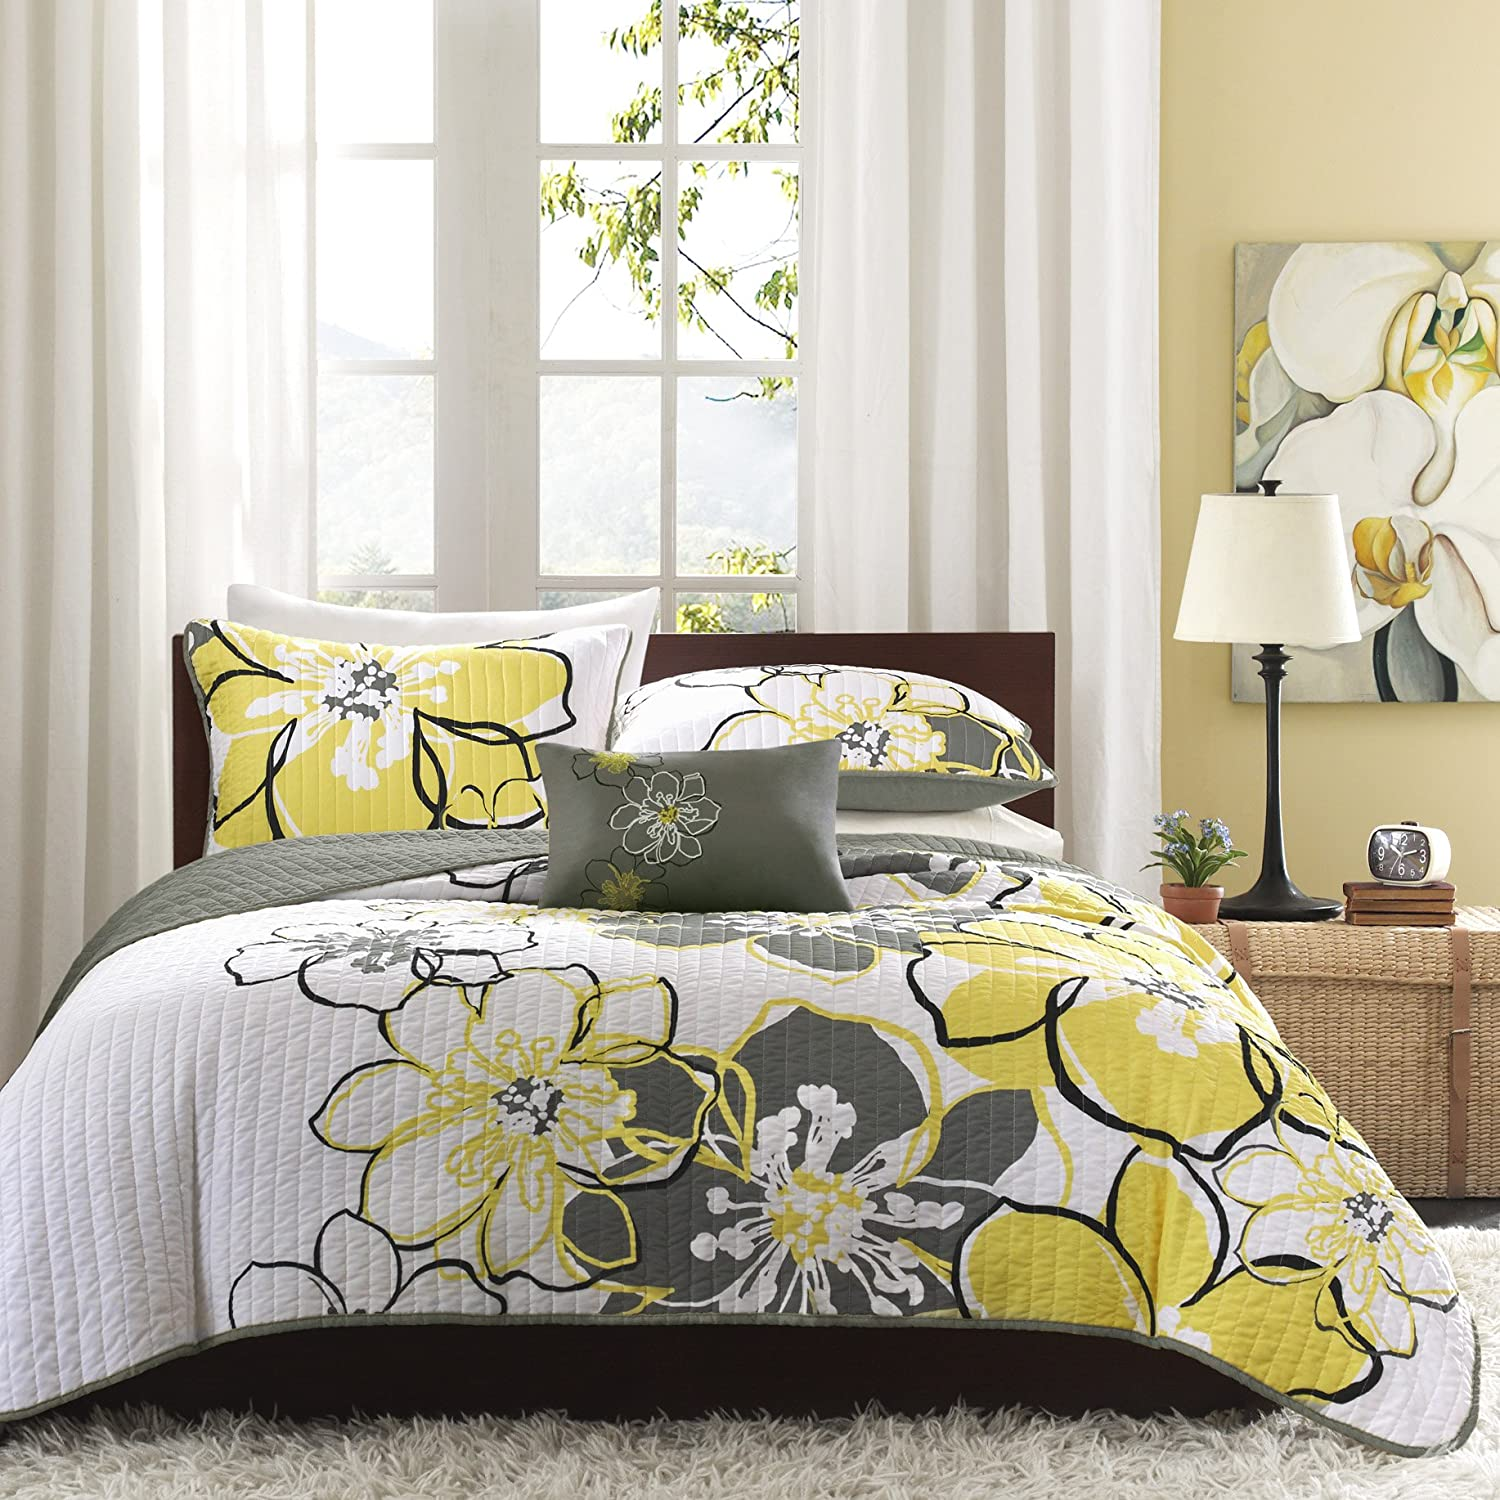 Cheap Doona Covers Yellow And Black Bedding Ease Bedding With Style